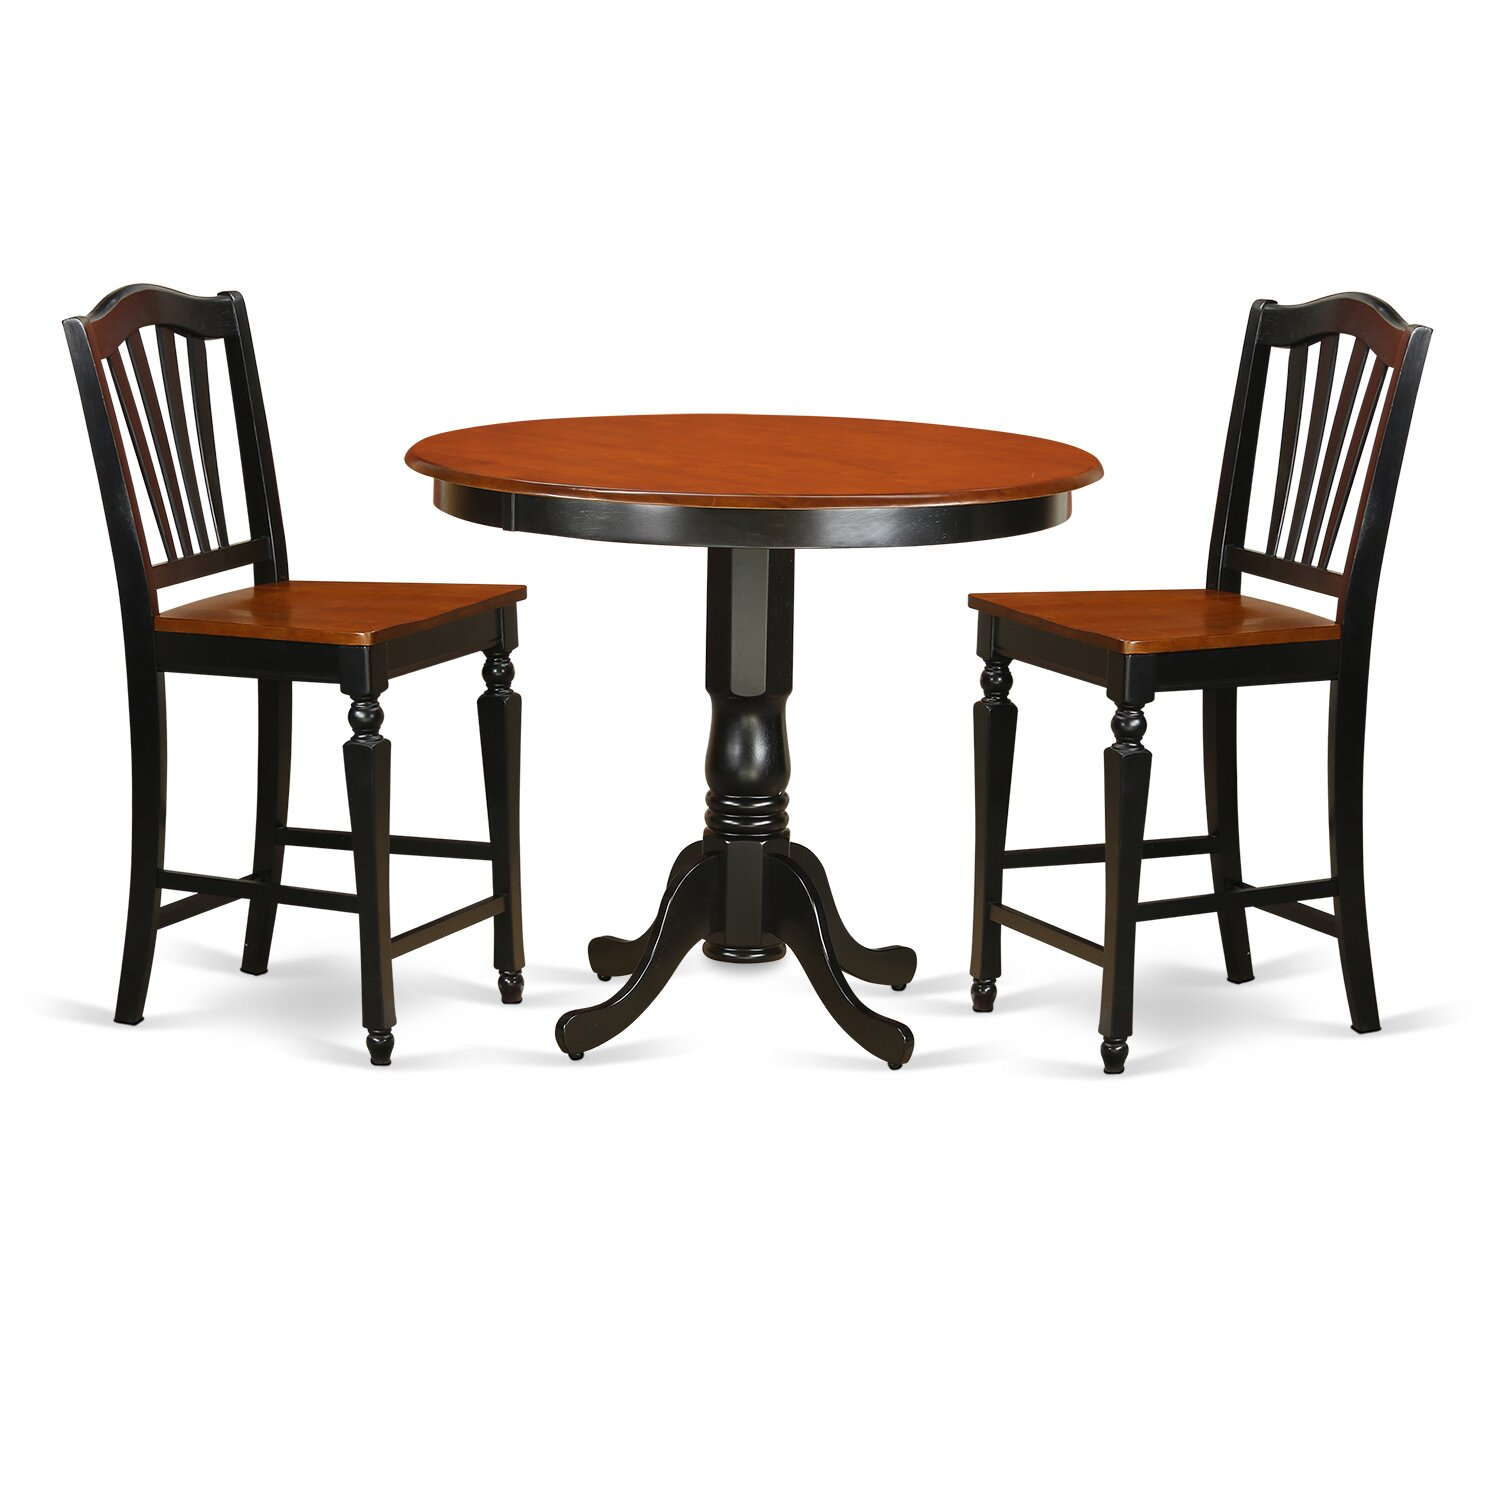 East West Trenton 3 Piece Counter Height Pub Table Set